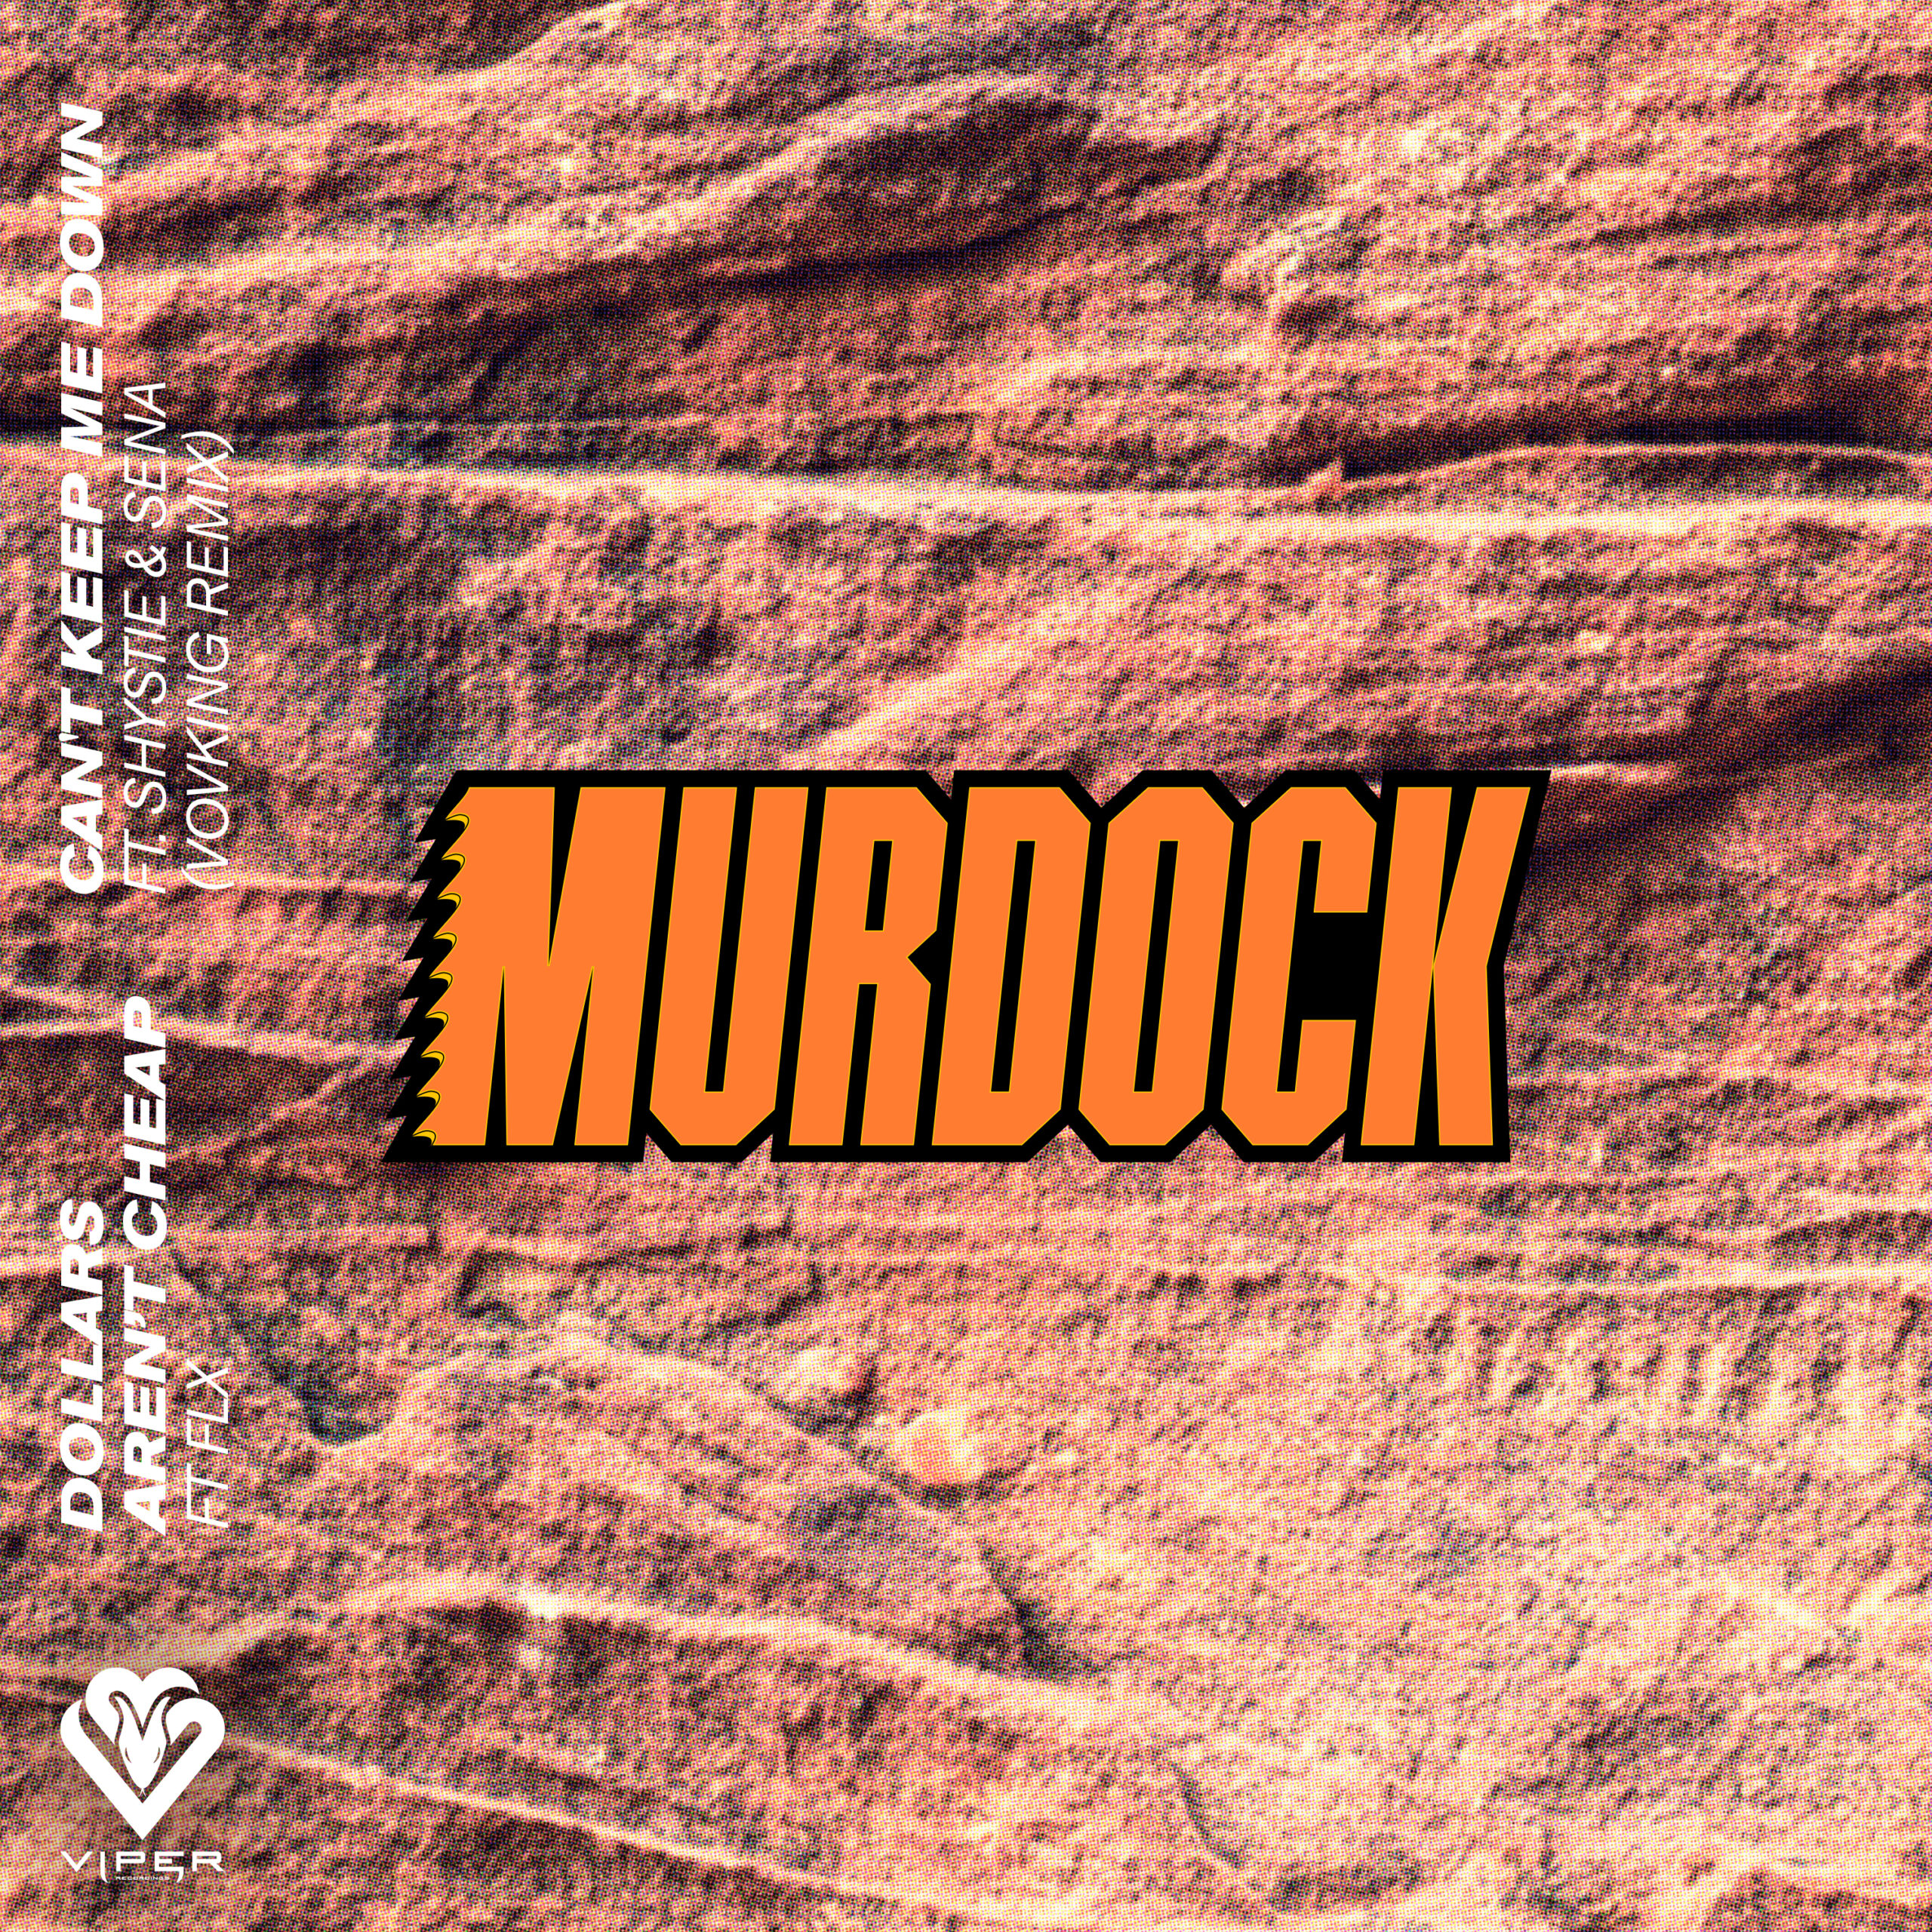 Murdock - Dollars Aren't Cheap [VPR204]